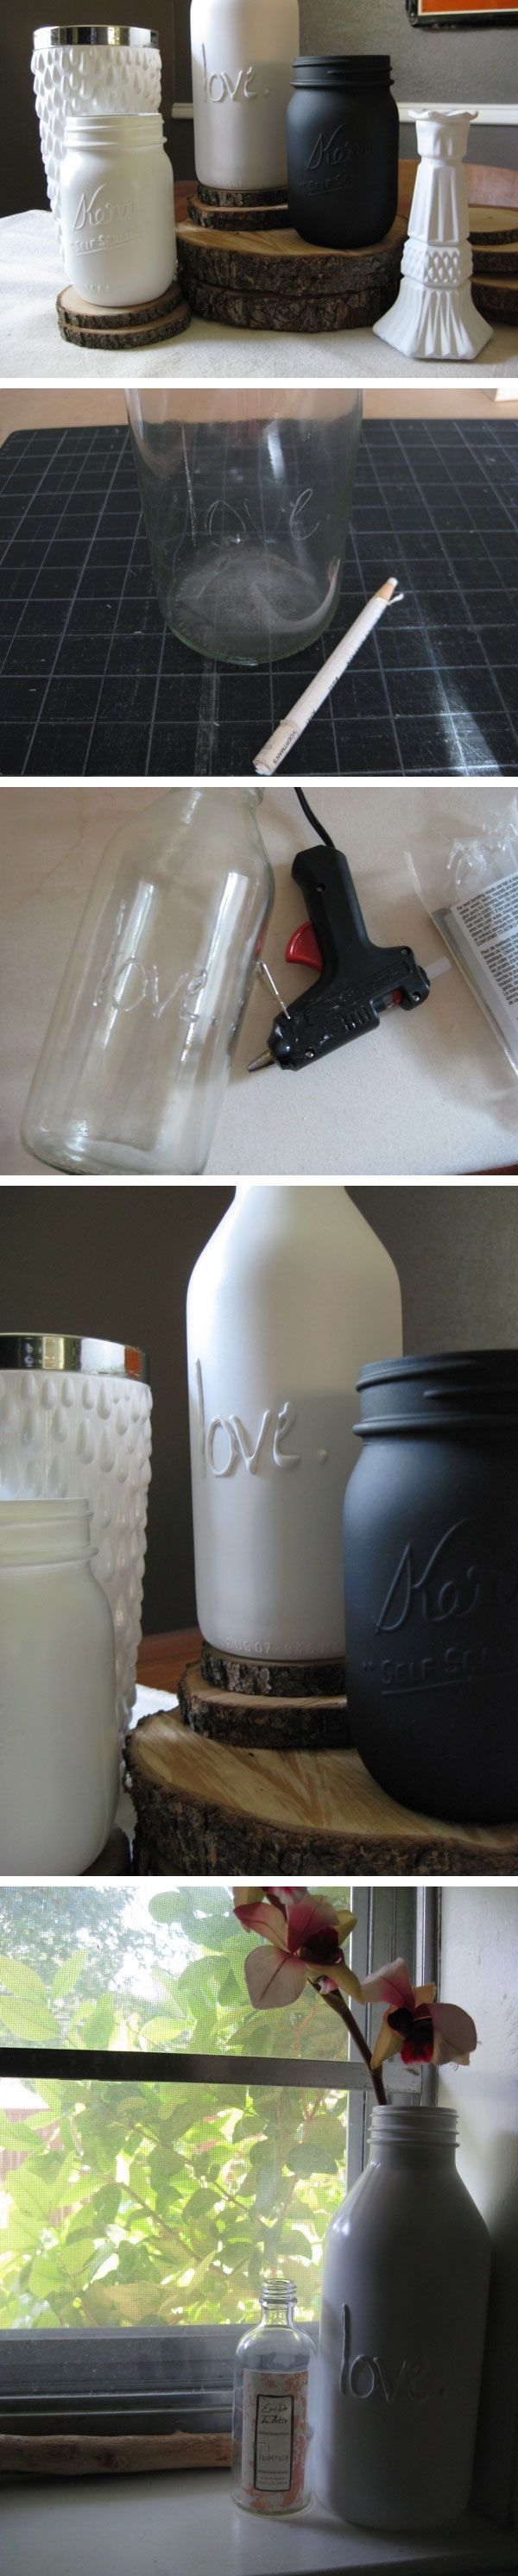 Mimic the Mason Jar look on any object using a simple glue gun and some spray paint. #DIY #object